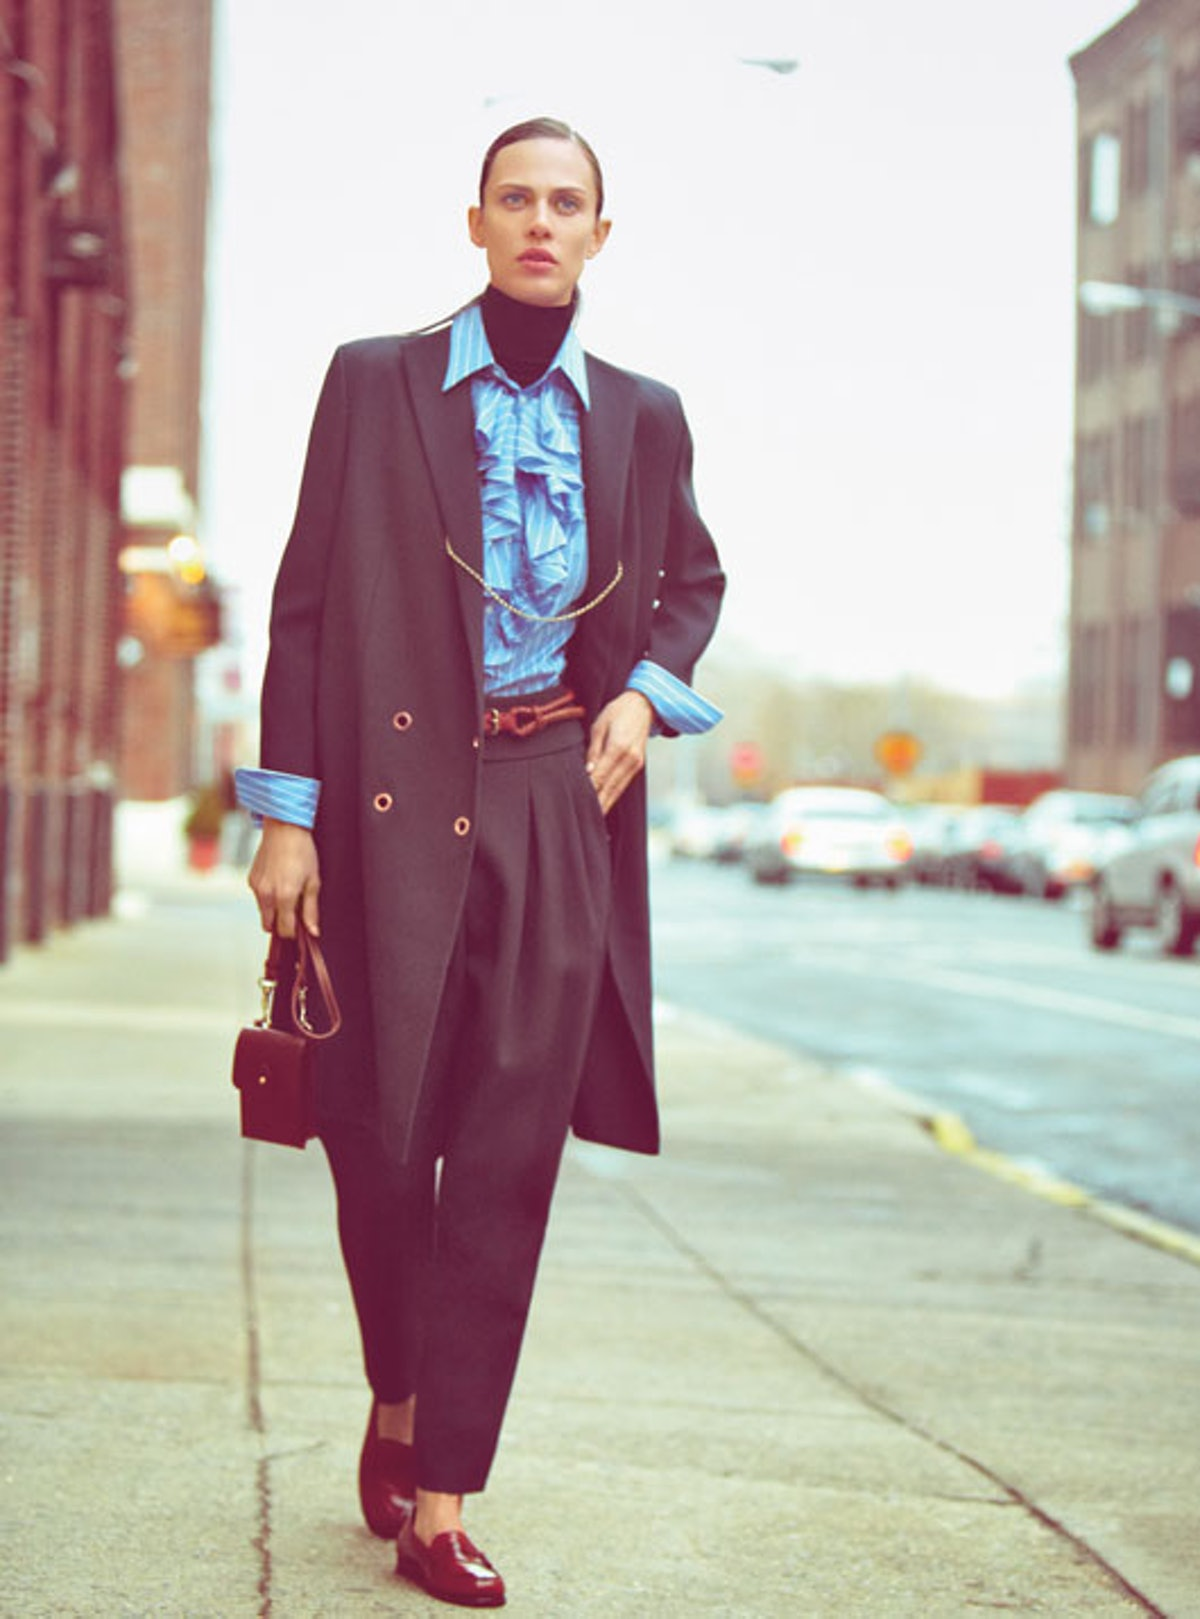 fass-menswear-inspired-coats-and-trousers-03-l.jpg